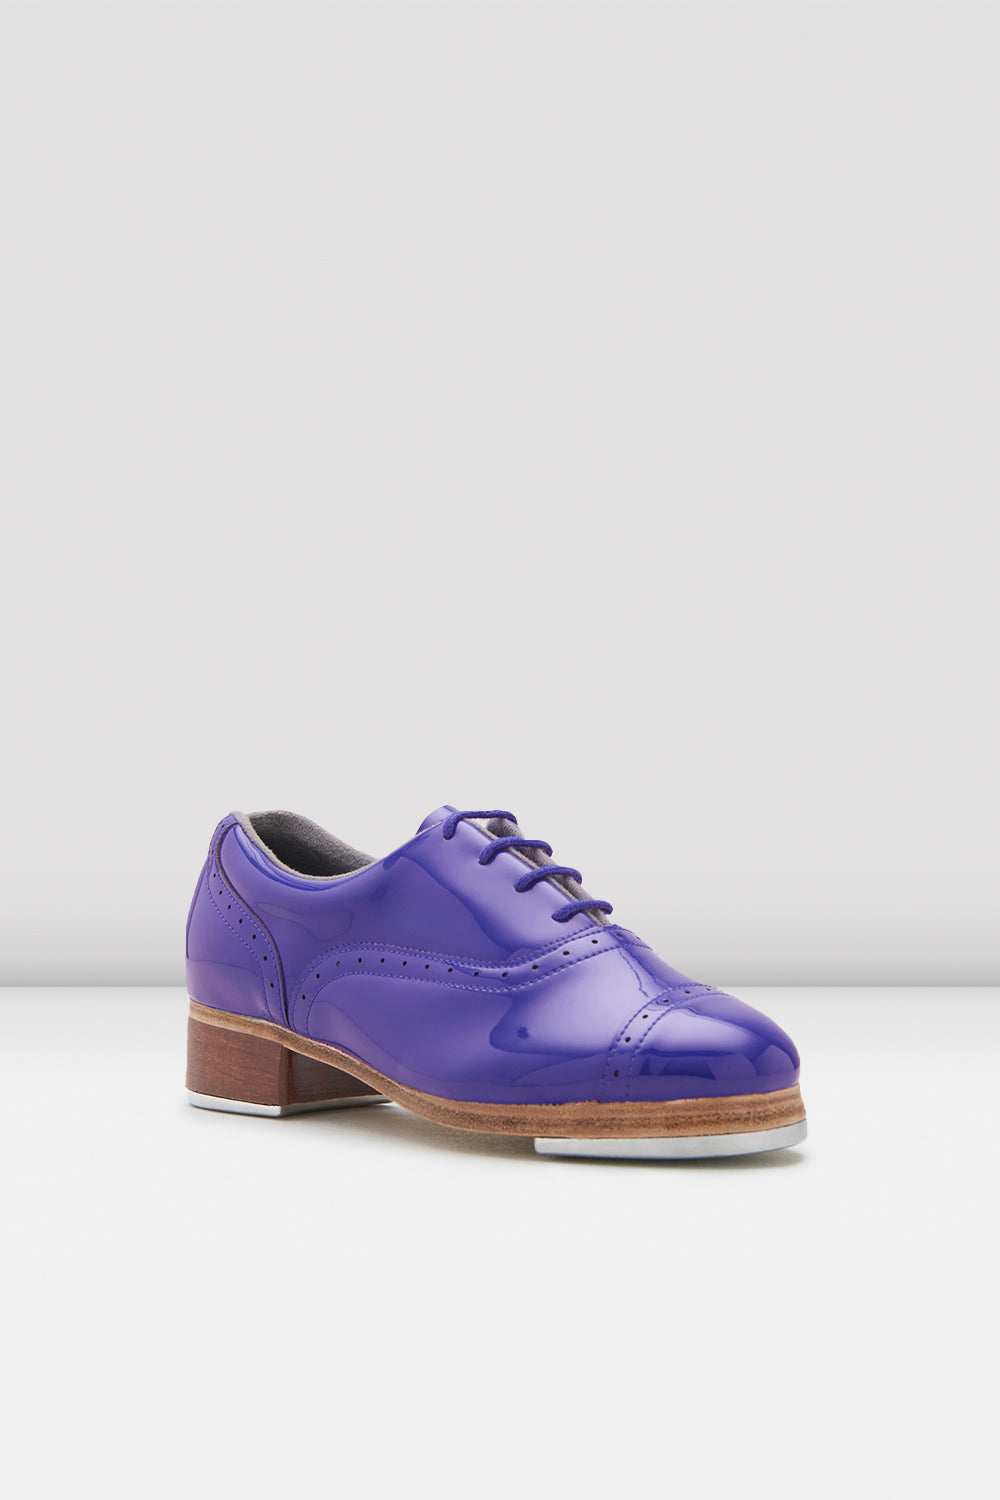 Dark blue patent Bloch Ladies Jason Samuels Smith Patent Tap Shoes single shoe side view focus on toe of shoe